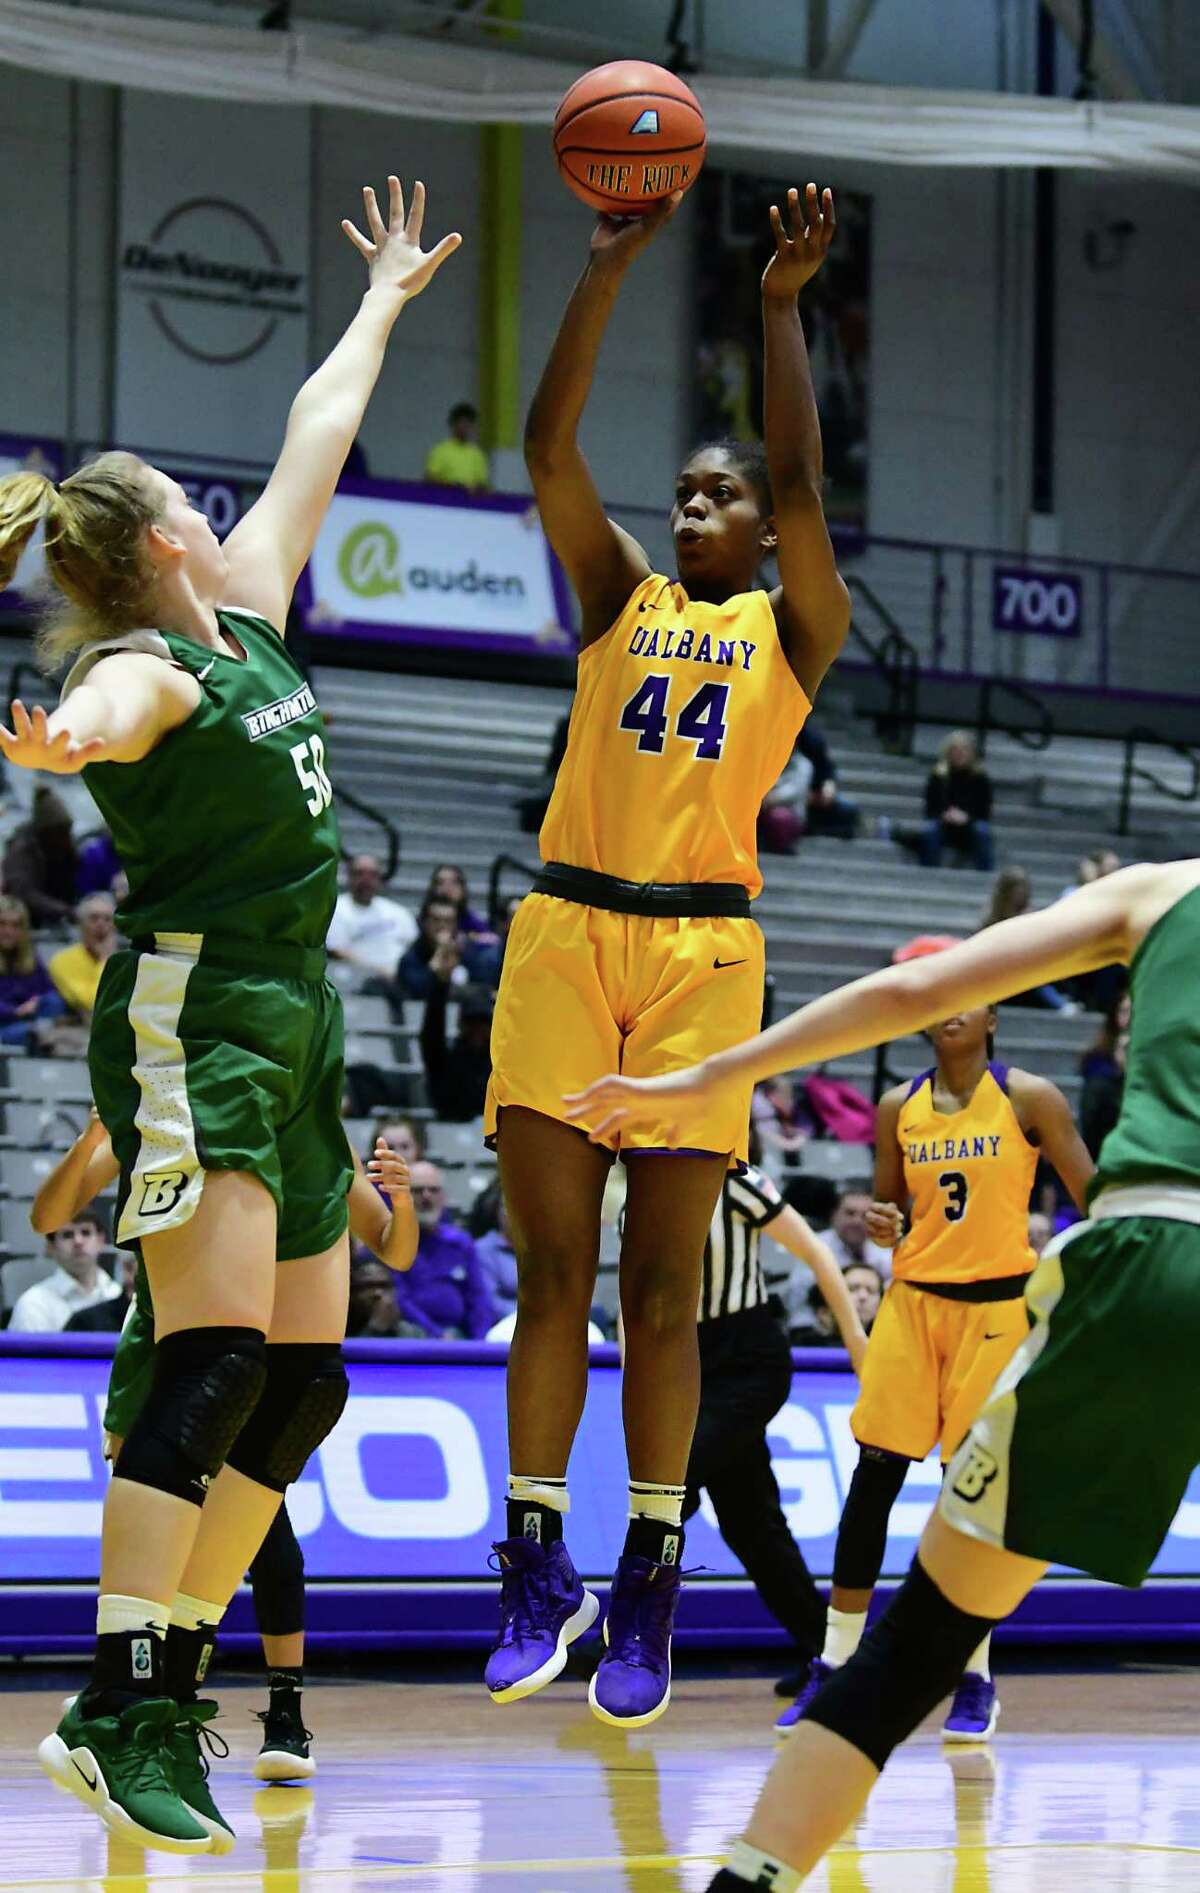 University at Albany's Chyanna Canada puts one up against Binghamton's Kaylee Wasco during a basketball game at the SEFCU Arena on Wednesday, March 6, 2019 in Albany, N.Y. (Lori Van Buren/Times Union)